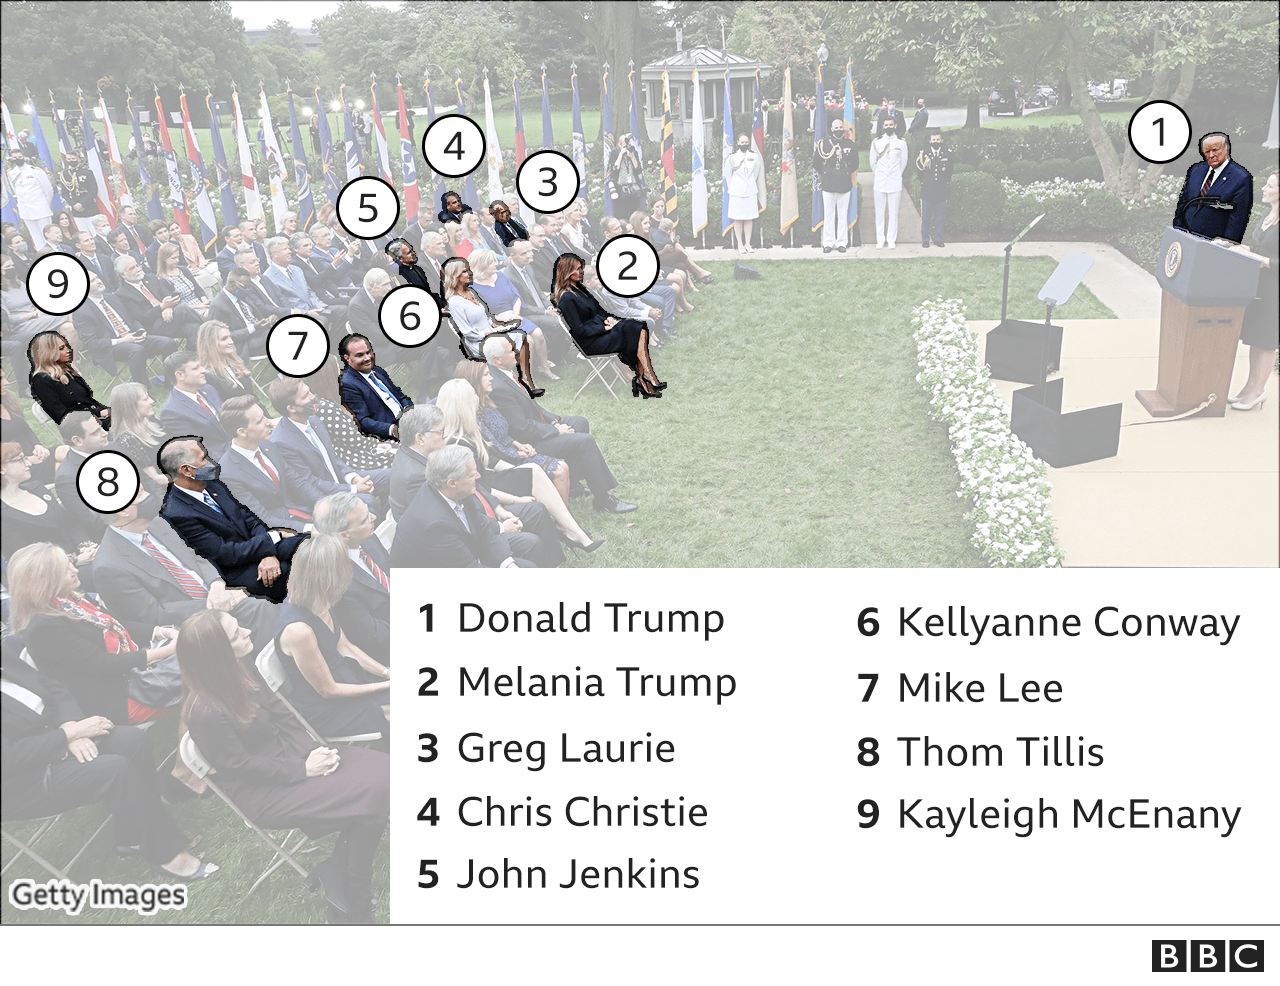 Annotated image of people attending the Rose Garden event that have since tested positive